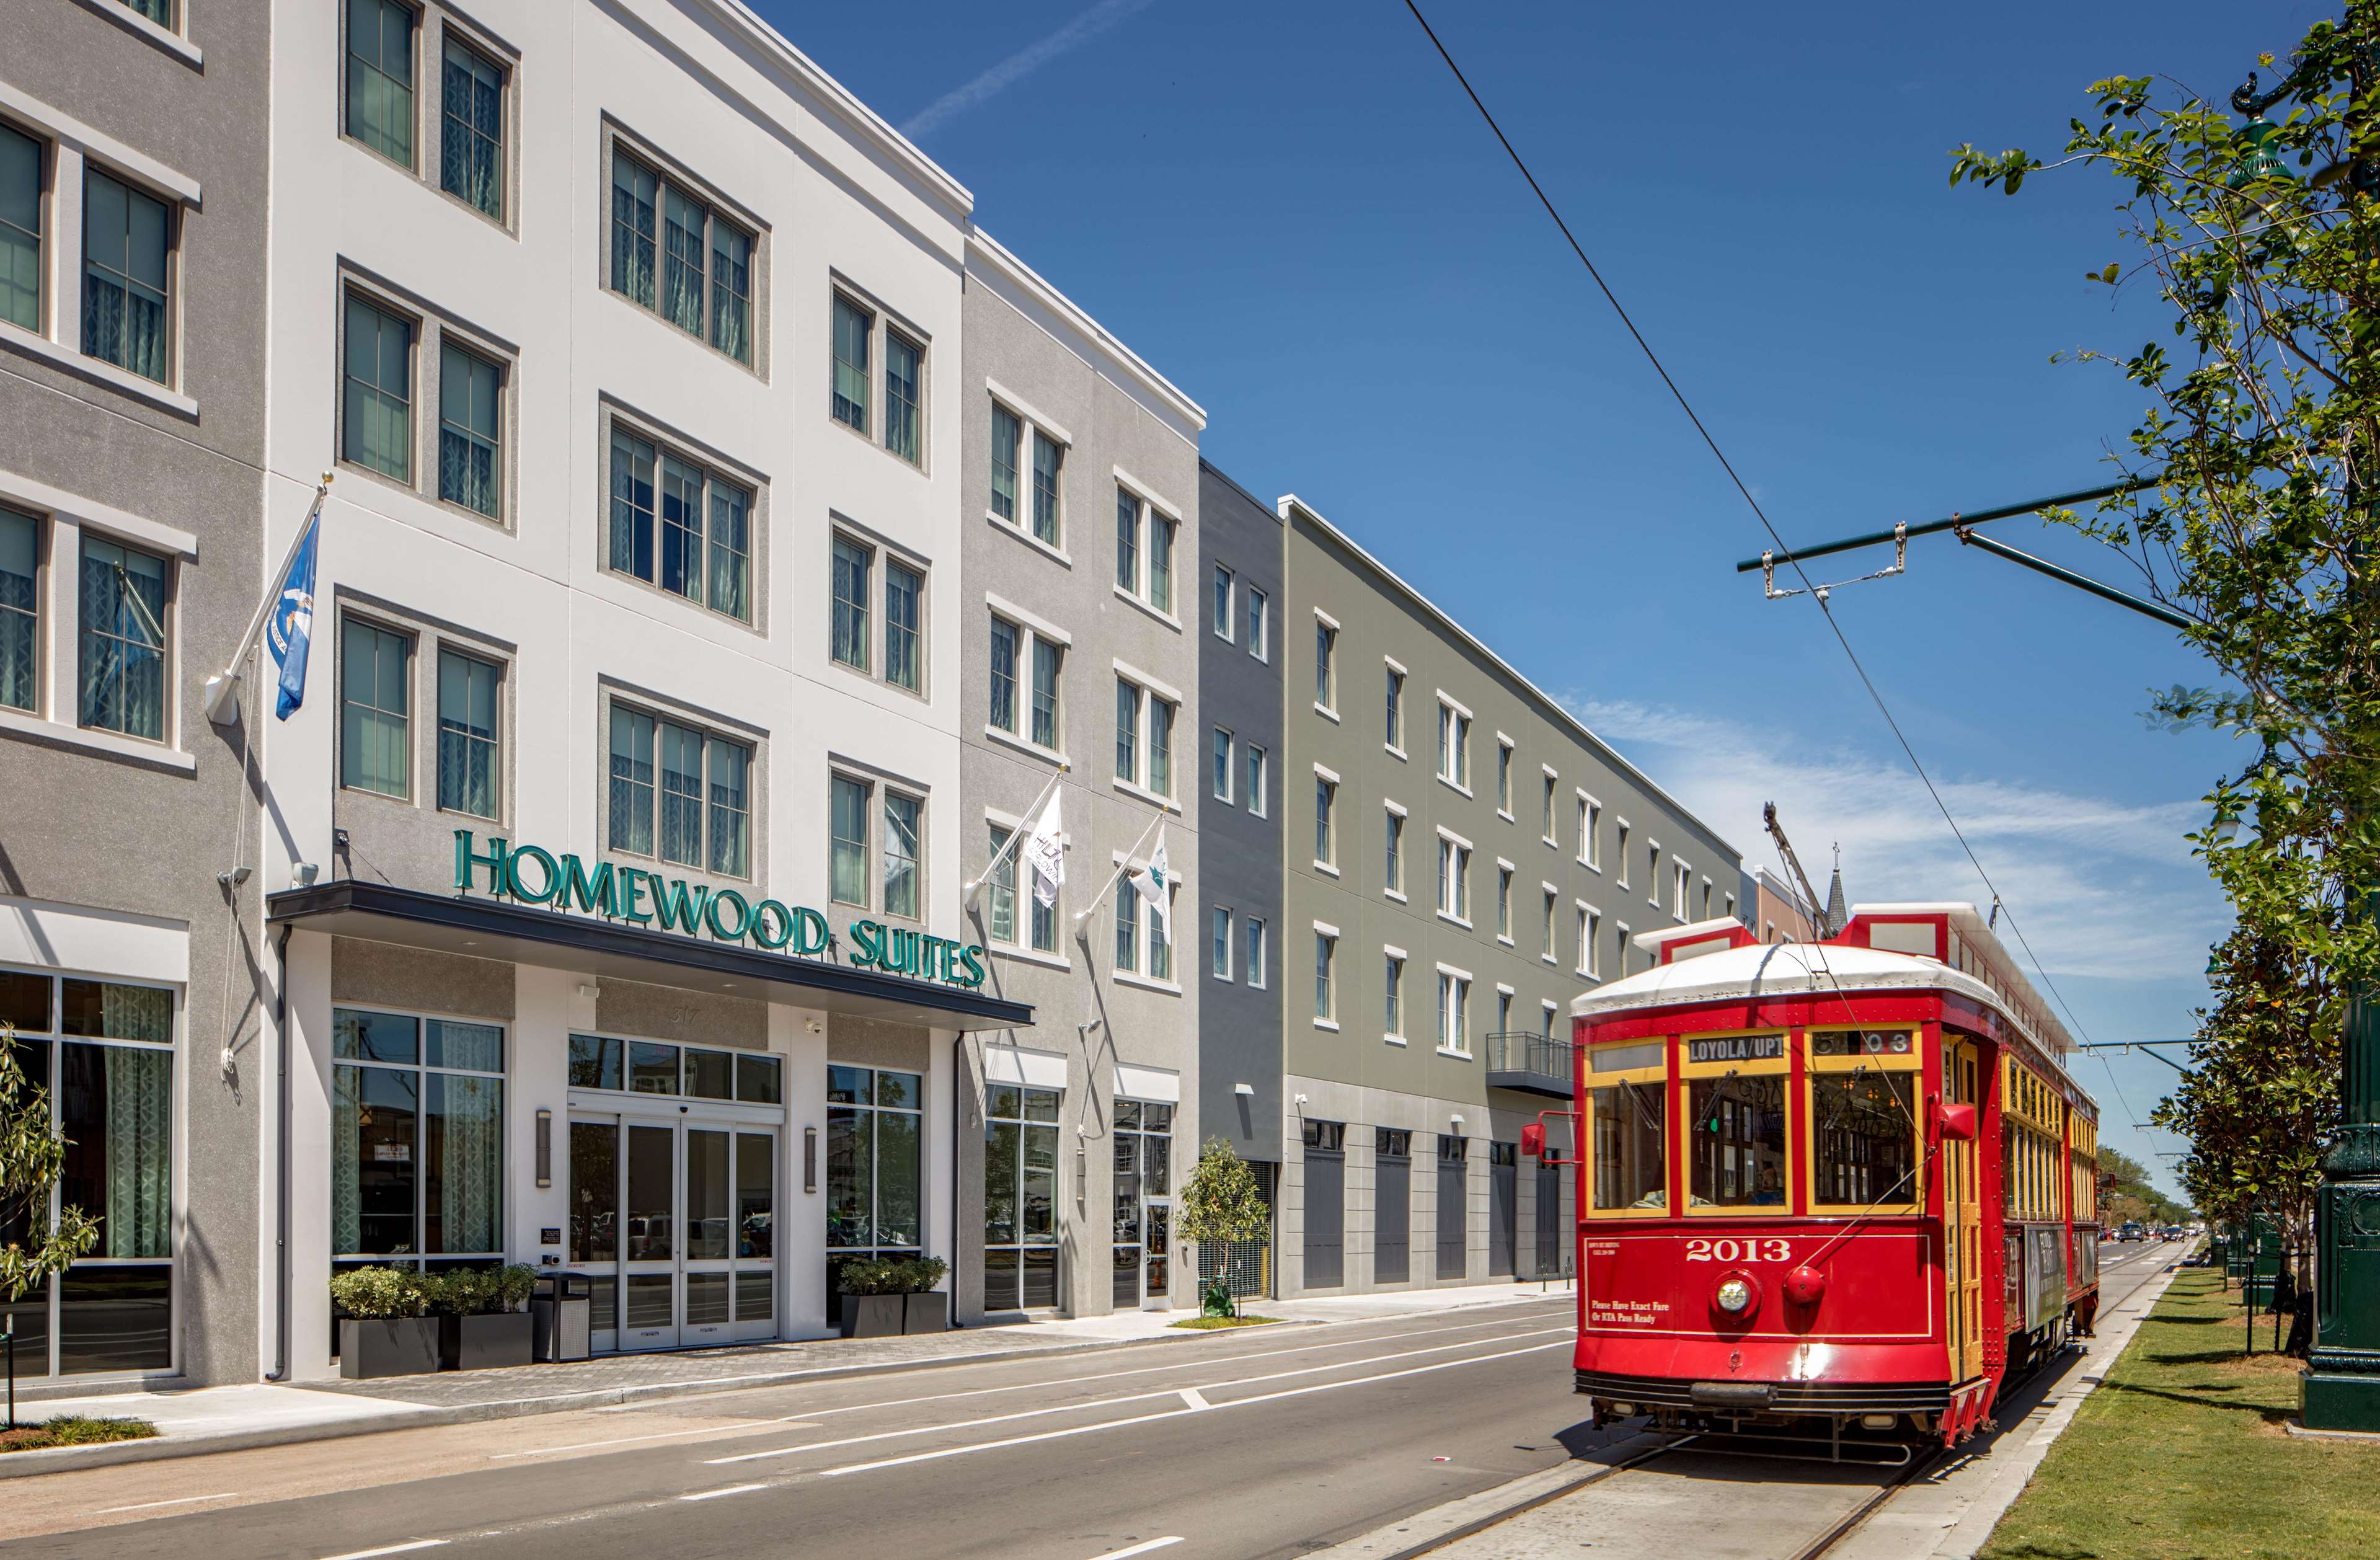 Homewood Suites by Hilton New Orleans French Quarter image 1